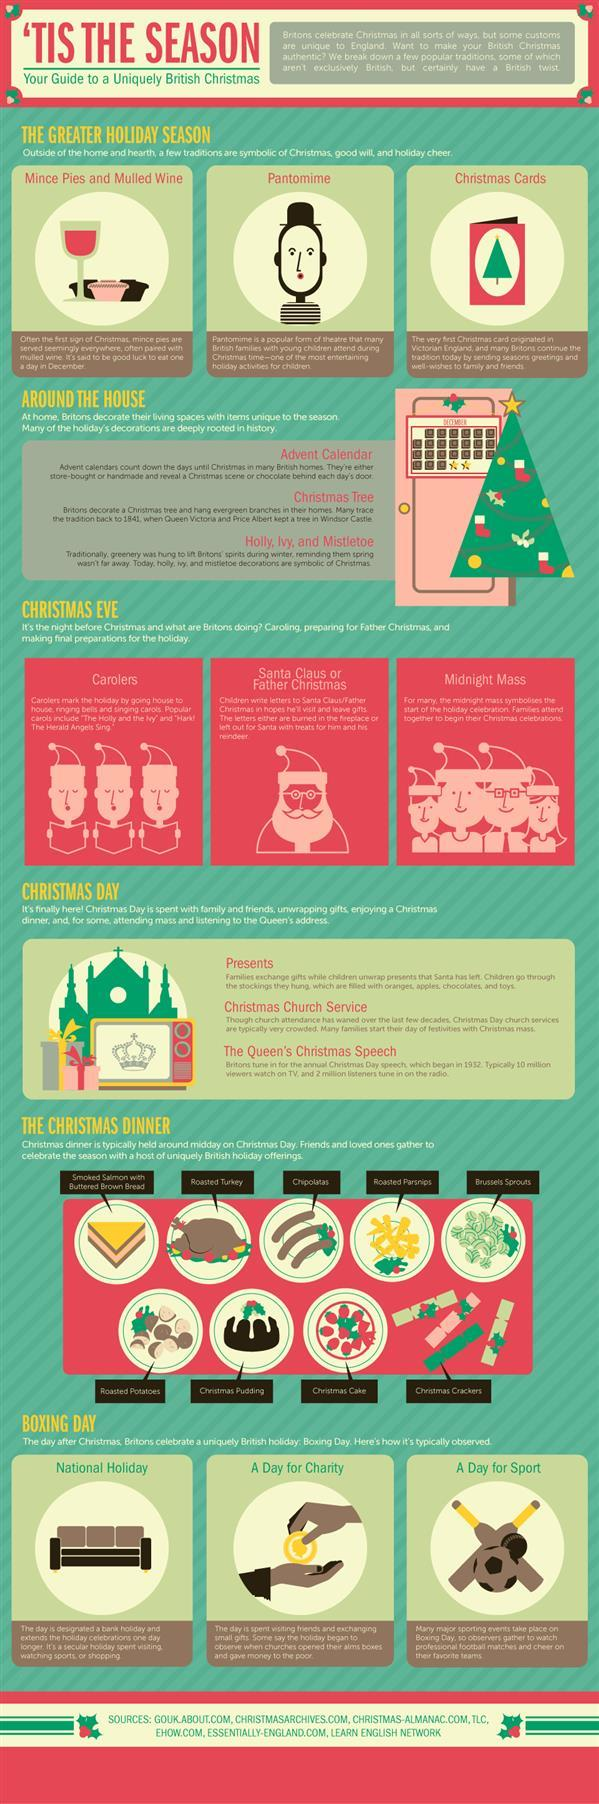 British Christmas traditions infographic